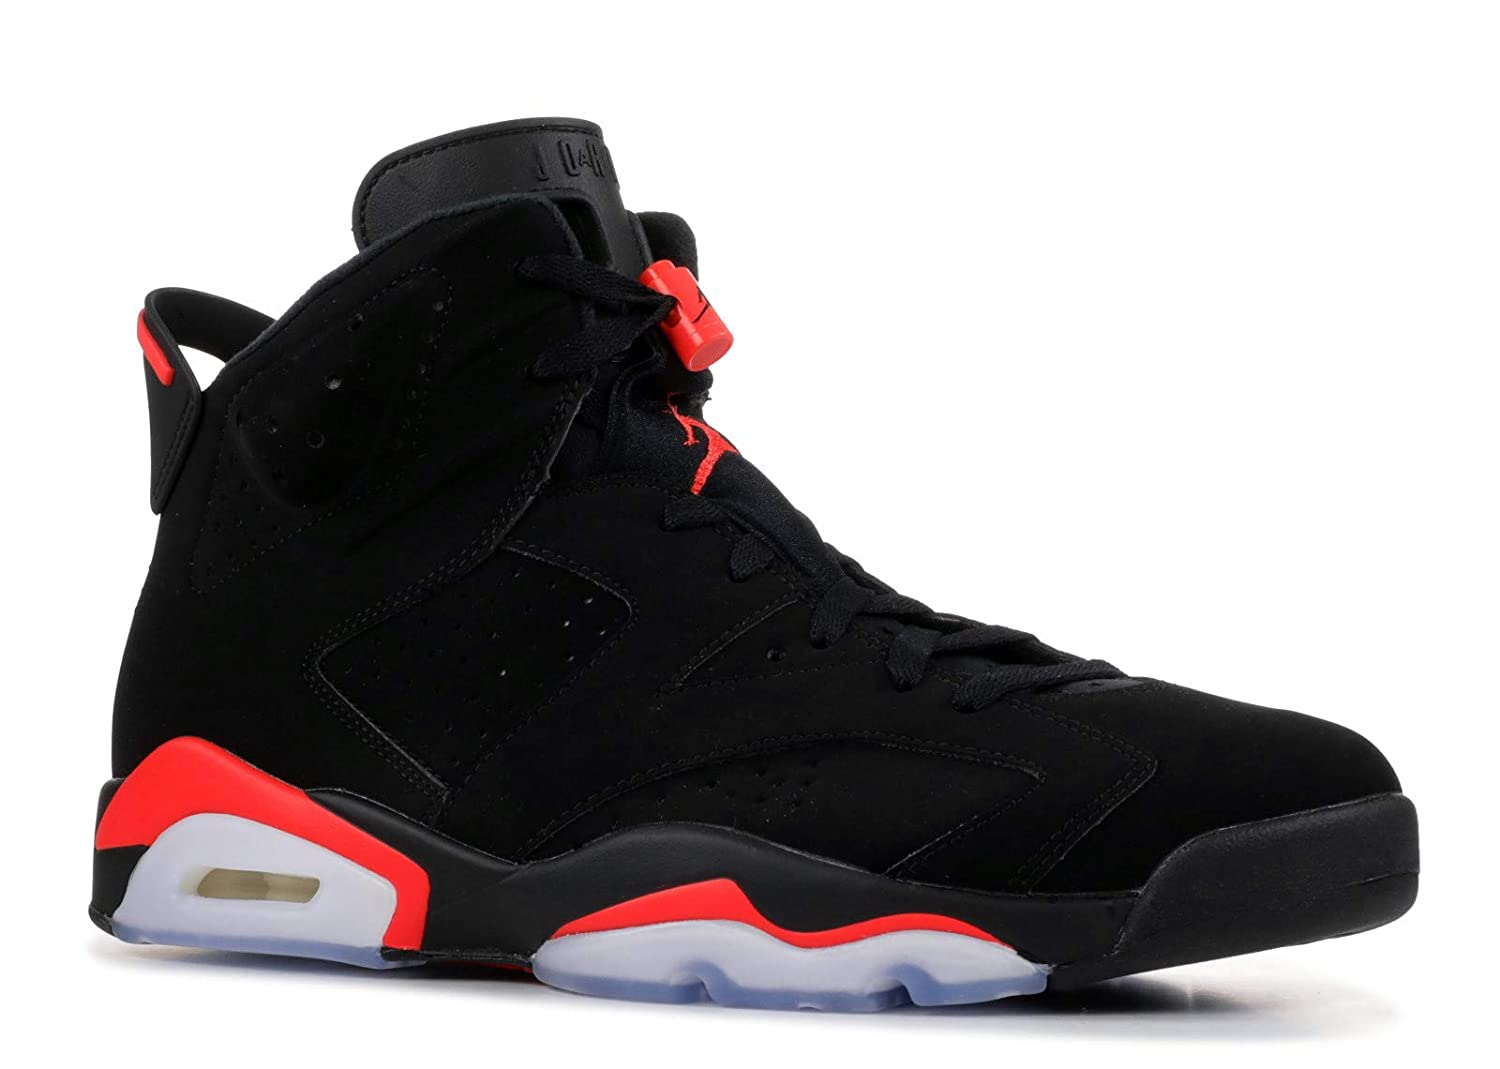 newest collection f2755 279d1 Amazon.com | Nike Air Jordan 6 Retro OG Black/Infrared 2019 ...